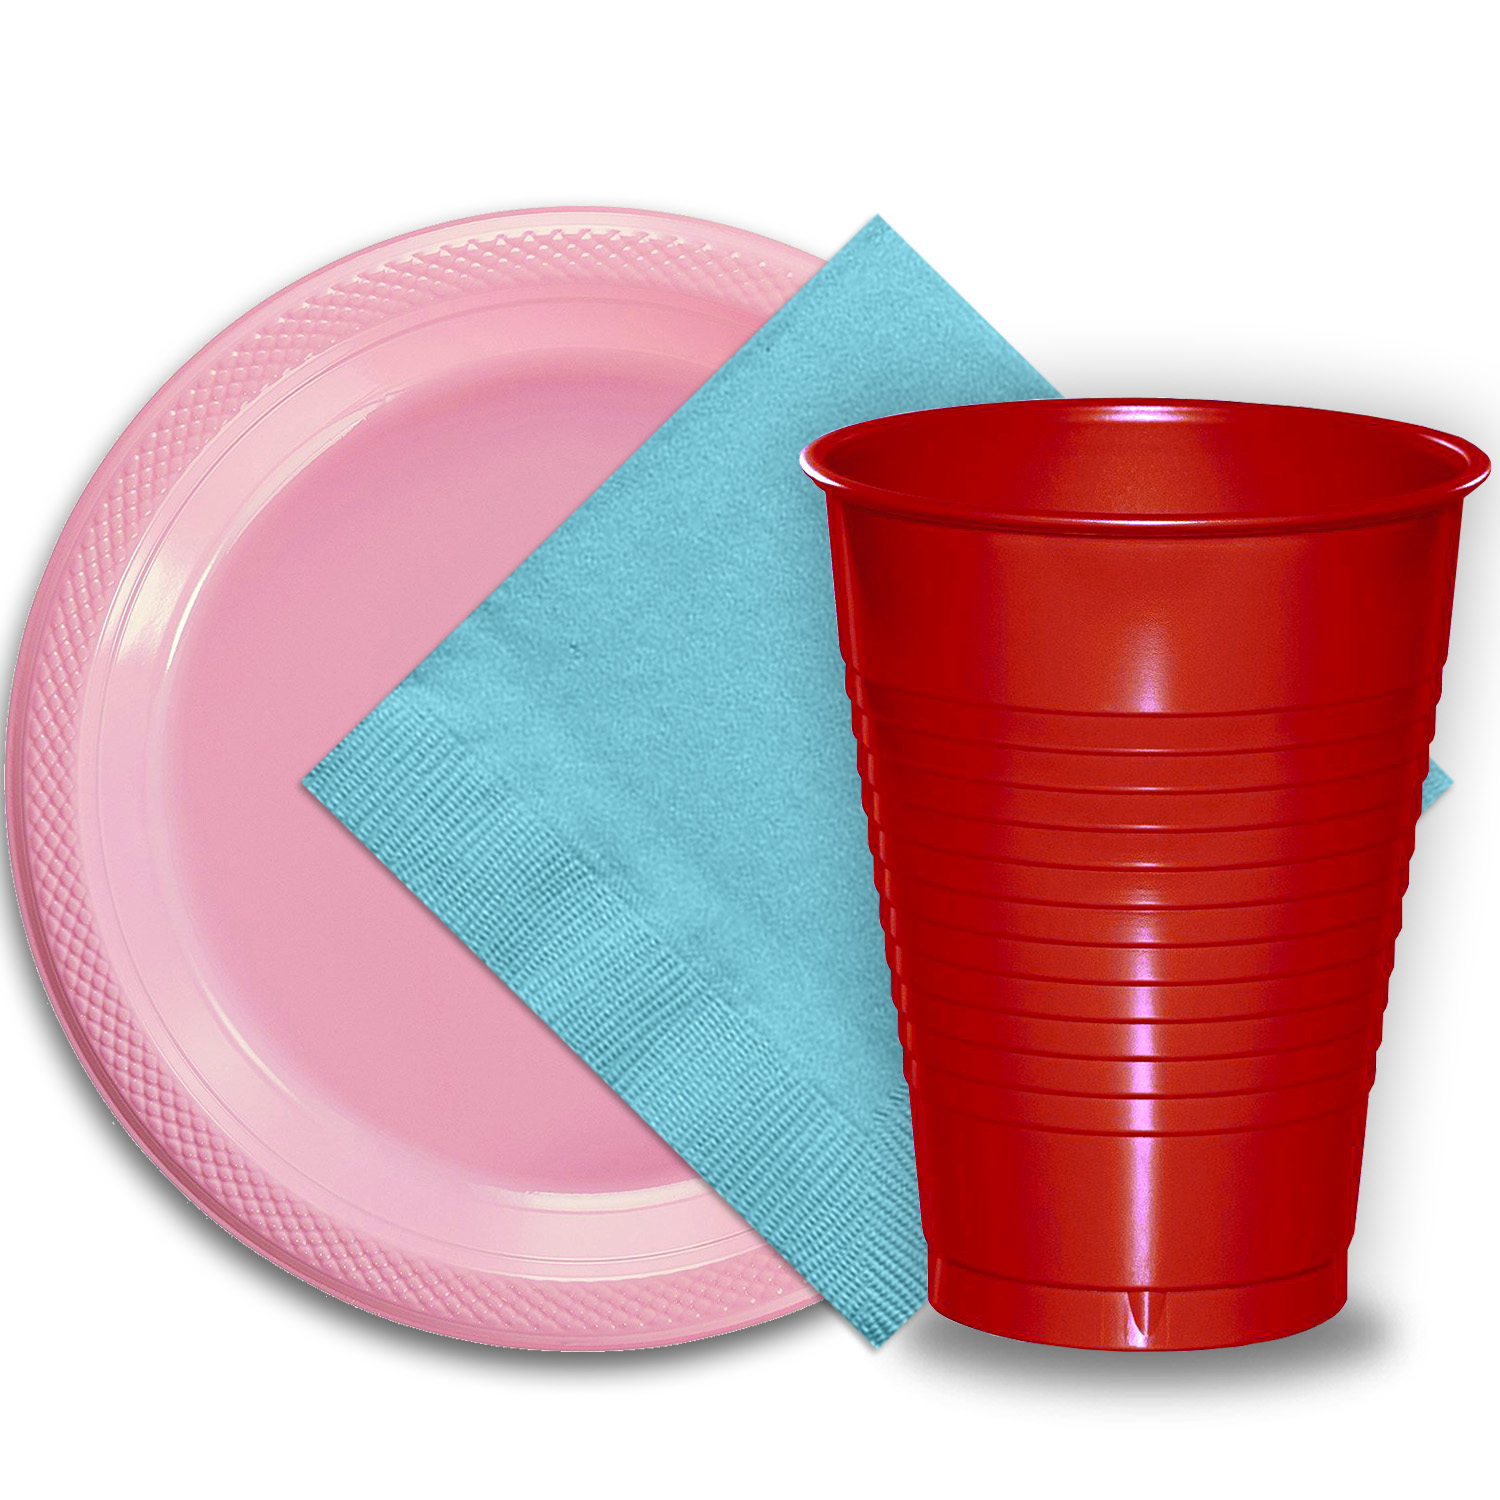 "50 Pink Plastic Plates (9""), 50 Red Plastic Cups (12 oz.), and 50 Light Blue Paper Napkins, Dazzelling Colored Disposable Party Supplies Tableware Set for Fifty Guests."